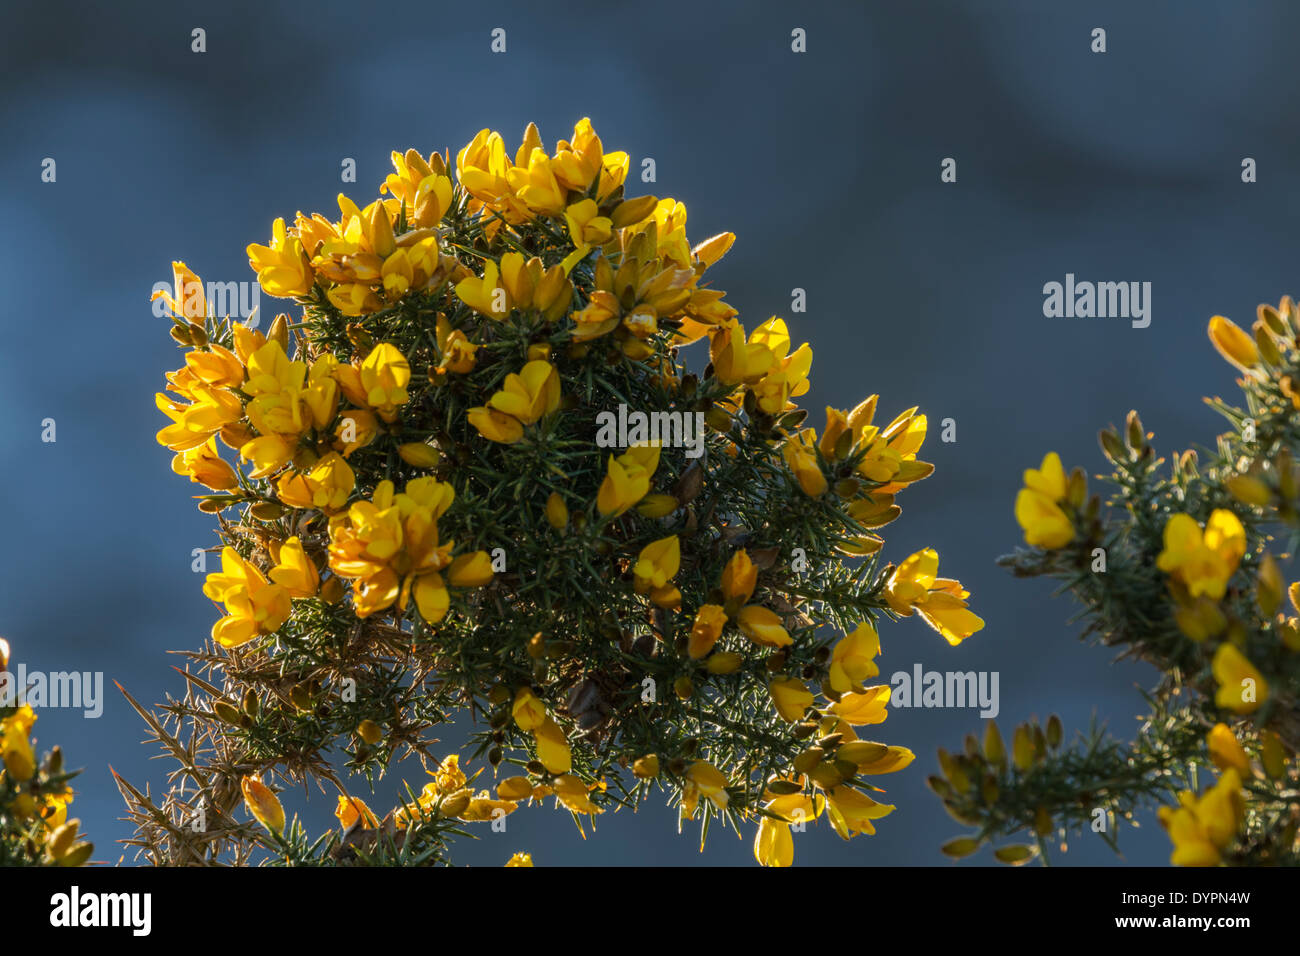 Gorse Latin Name Ulex Europaeus Stock Photos Gorse Latin Name Ulex